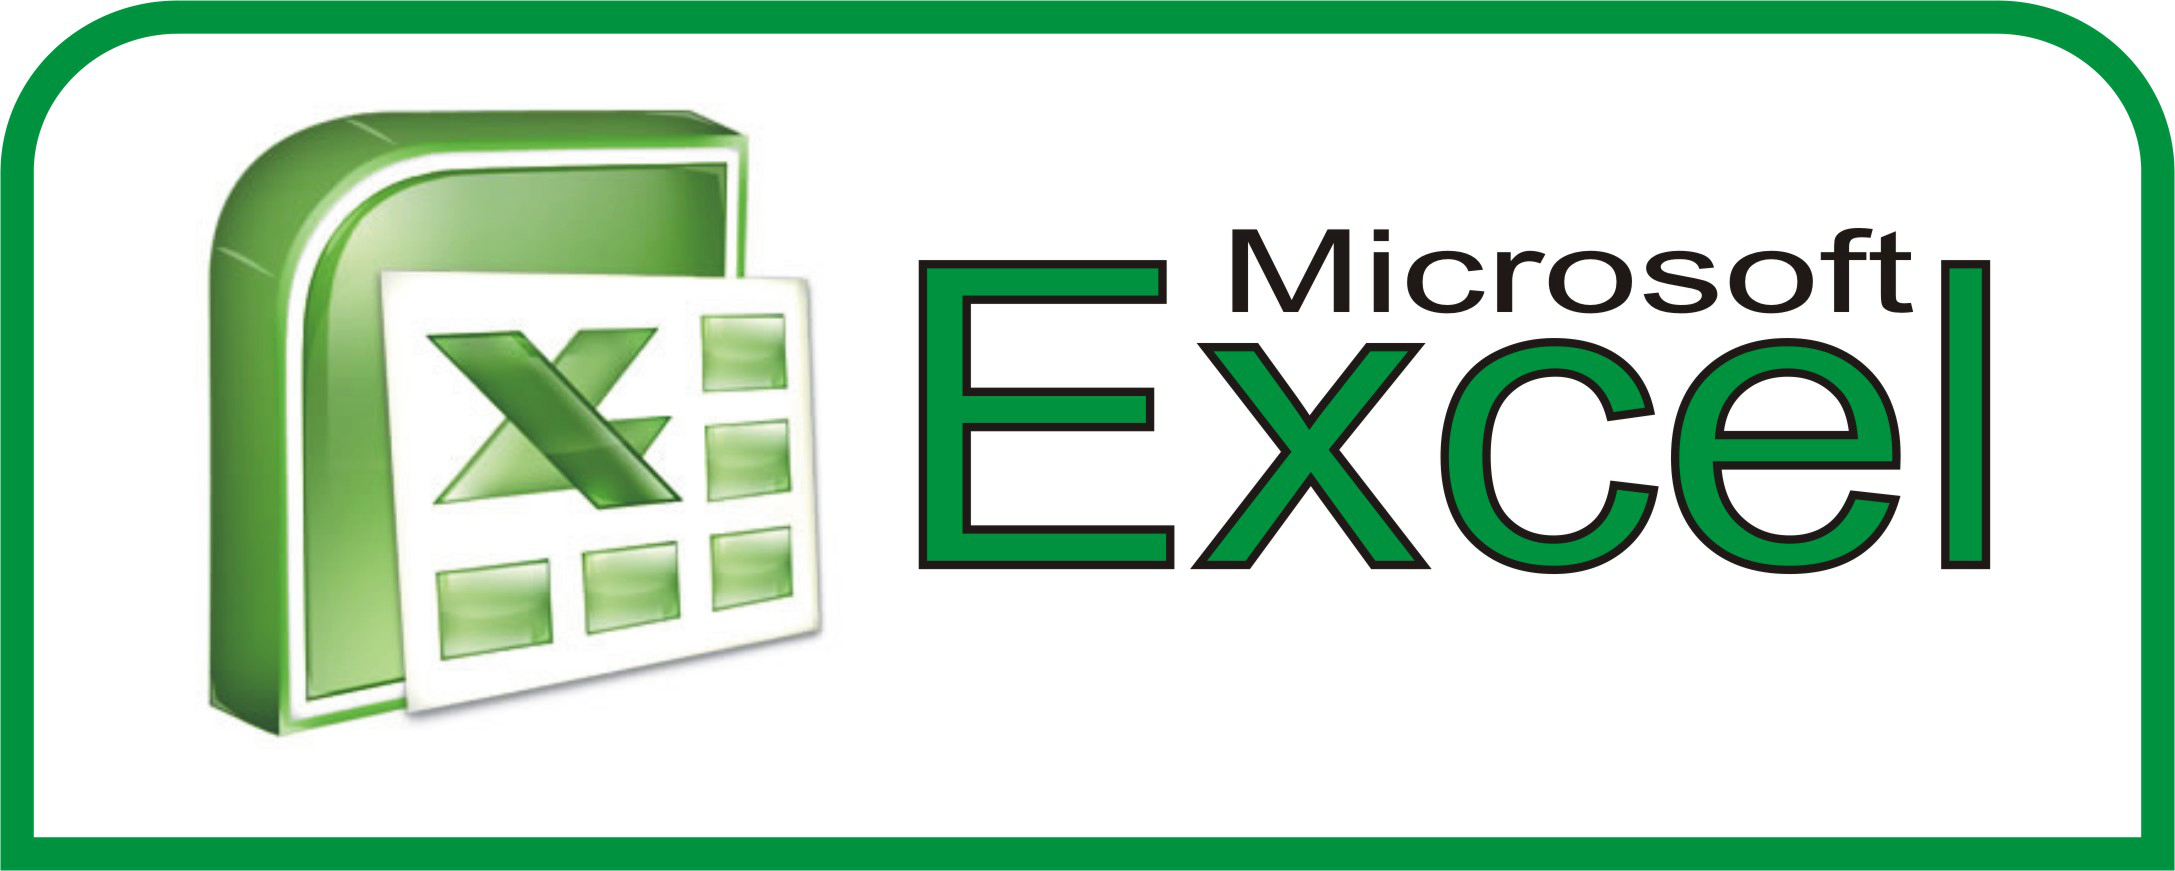 Ediblewildsus  Mesmerizing  Excel Shortcuts You Probably Didnt Know About  Techdissected With Marvelous Excel Chart Label Besides Chi Squared Test In Excel Furthermore Microsoft Visual Basic Excel With Easy On The Eye What Is Offset In Excel Also Microsoft Access And Excel In Addition Online Excel To Pdf Converter And Iqr On Excel As Well As Calculate Averages In Excel Additionally Insert Excel In Powerpoint From Techdissectedcom With Ediblewildsus  Marvelous  Excel Shortcuts You Probably Didnt Know About  Techdissected With Easy On The Eye Excel Chart Label Besides Chi Squared Test In Excel Furthermore Microsoft Visual Basic Excel And Mesmerizing What Is Offset In Excel Also Microsoft Access And Excel In Addition Online Excel To Pdf Converter From Techdissectedcom